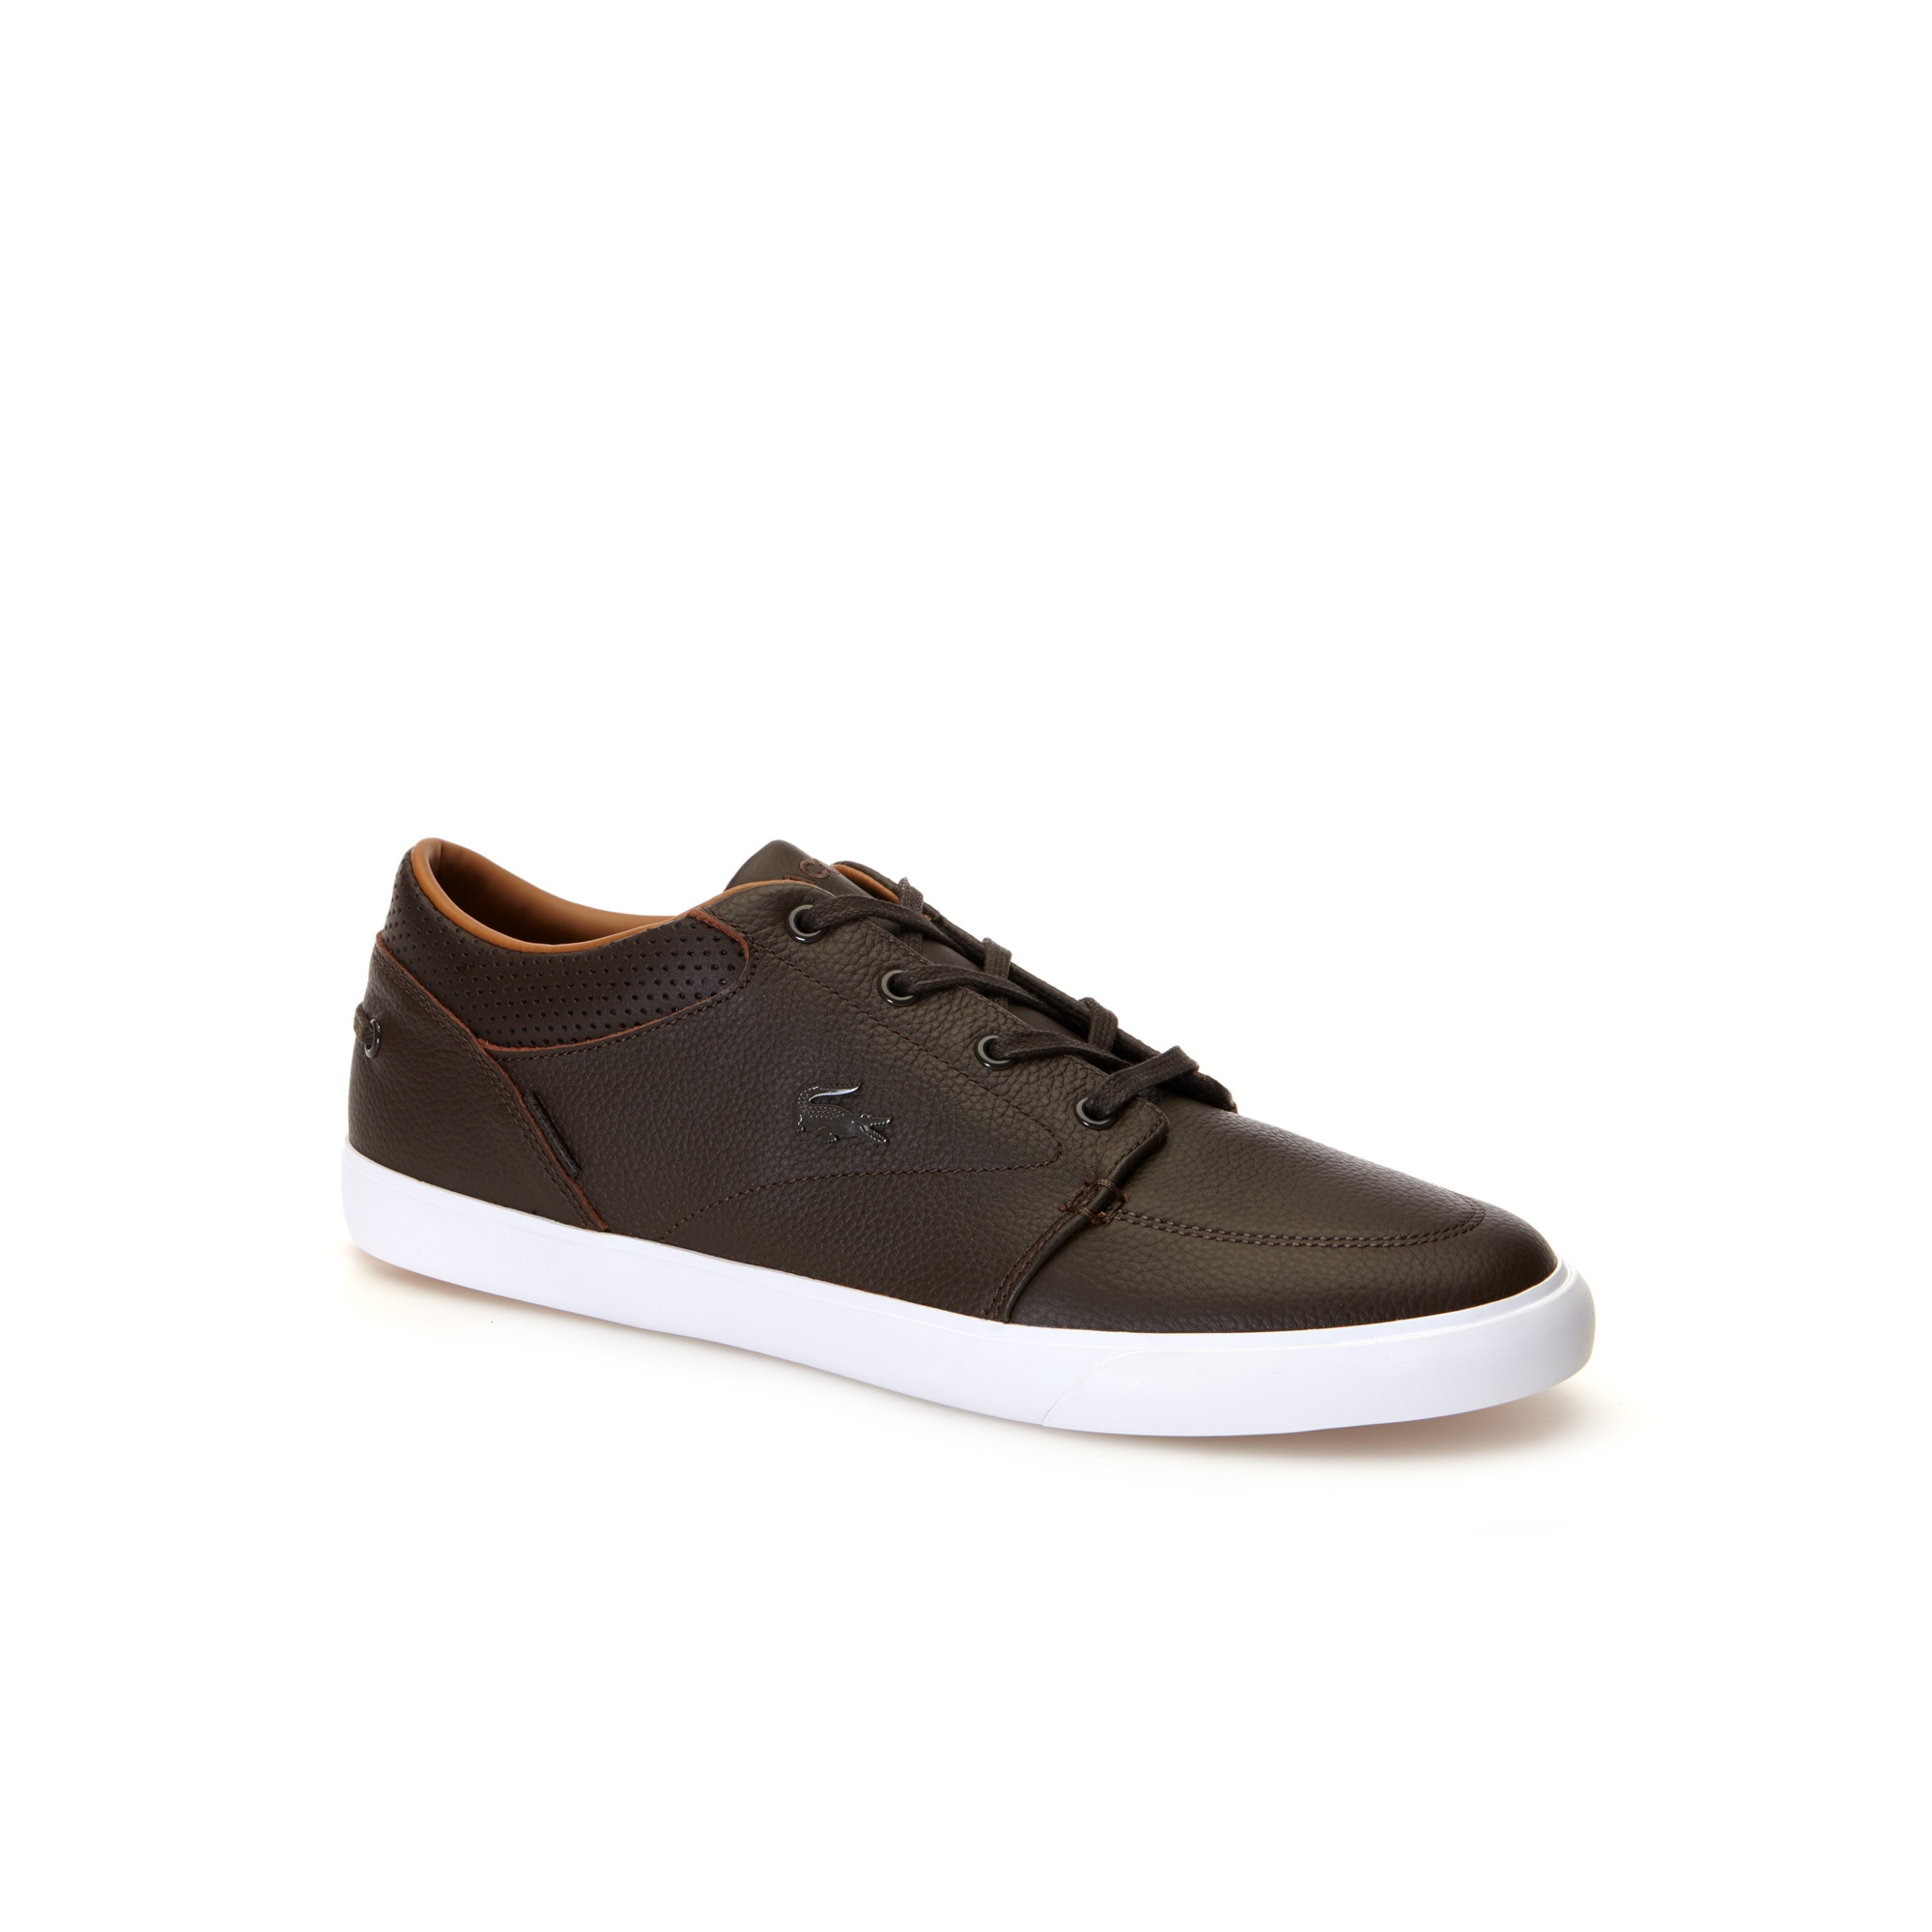 Men's Bayliss Vulc PRM Shoes